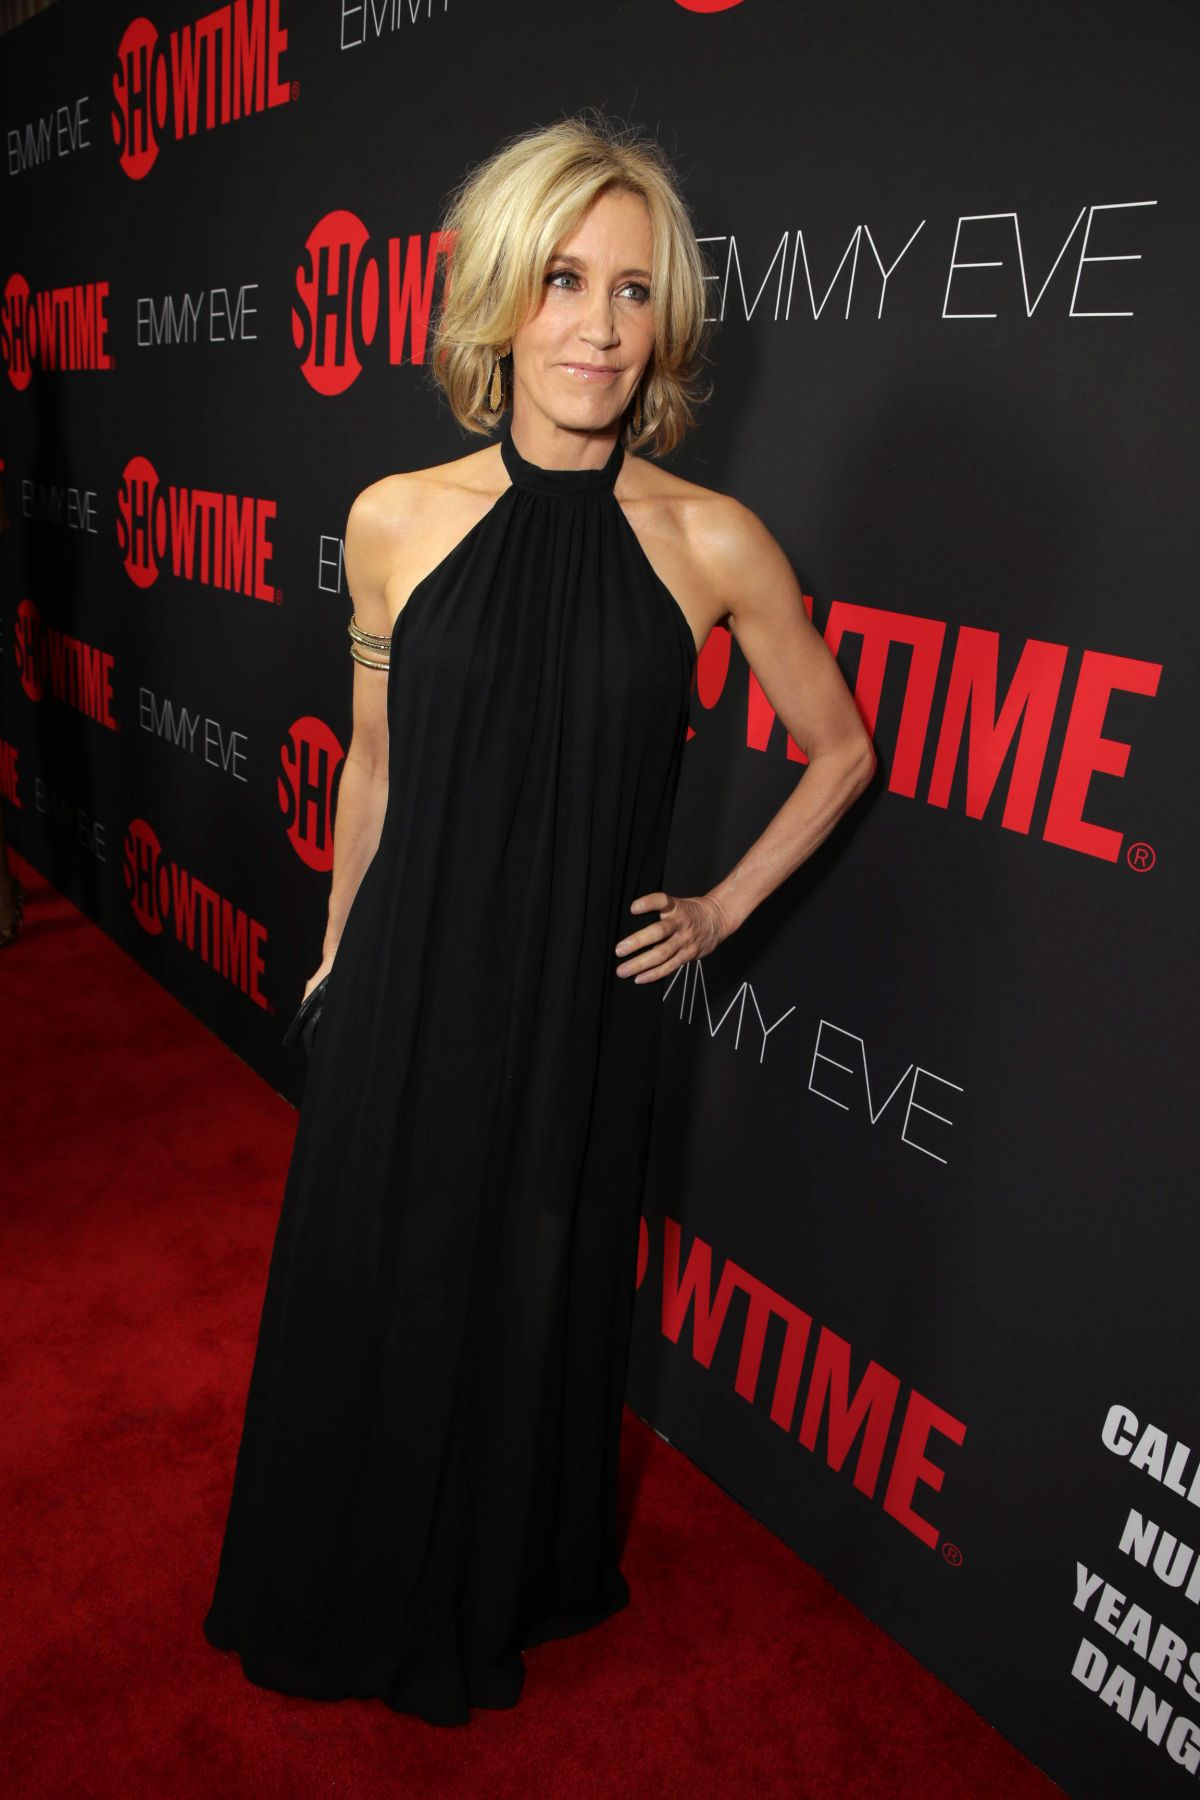 FELICITY HUFFMAN at Showtime's Emmy Eve Soire - HawtCelebs ... Emmy Eve